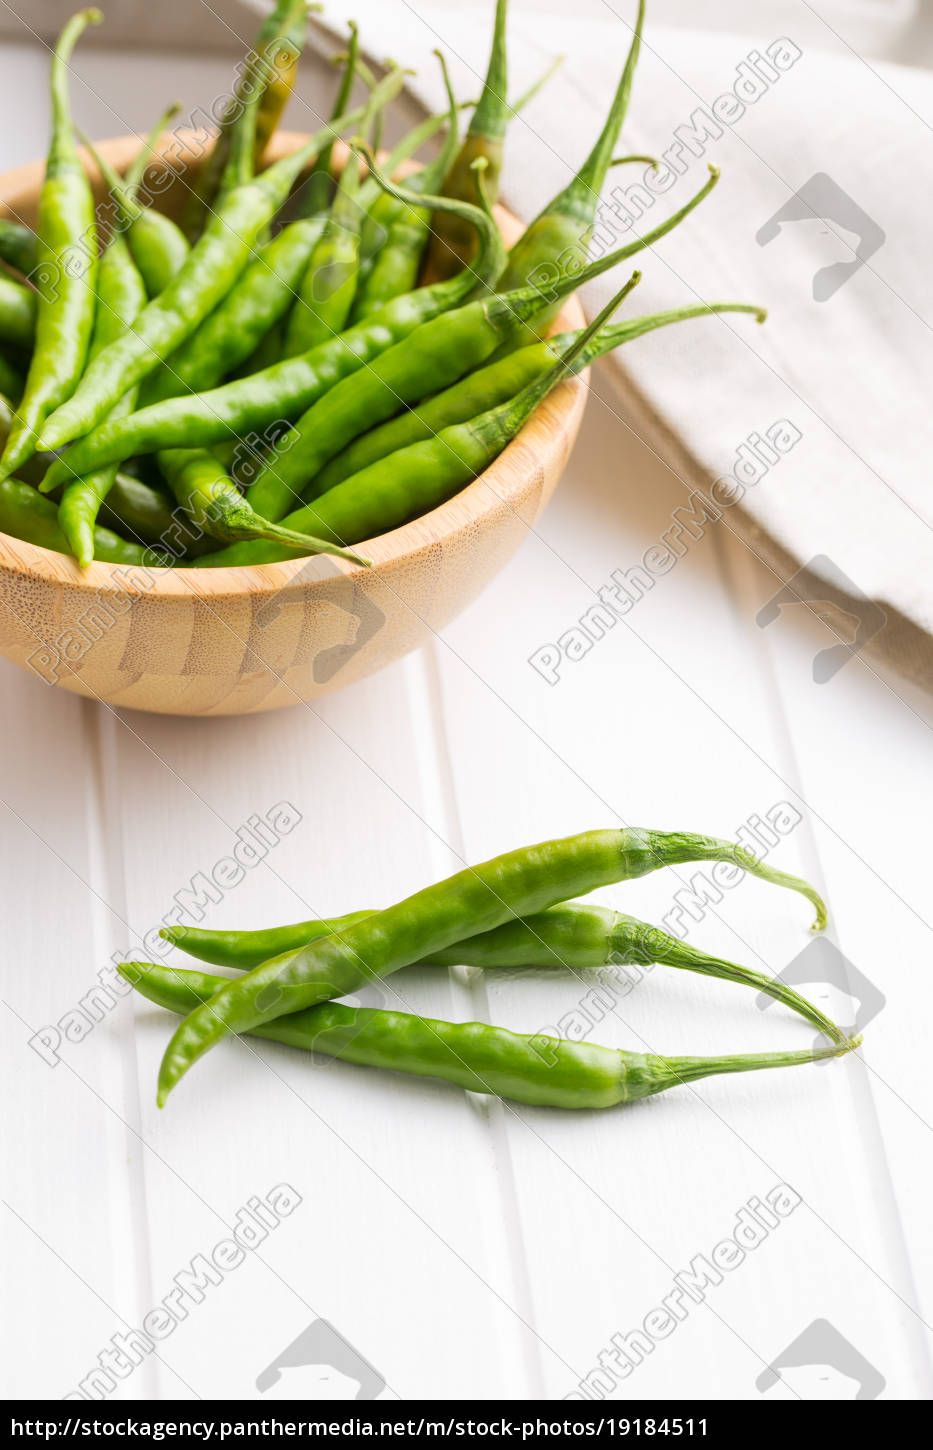 green, chili, peppers. - 19184511